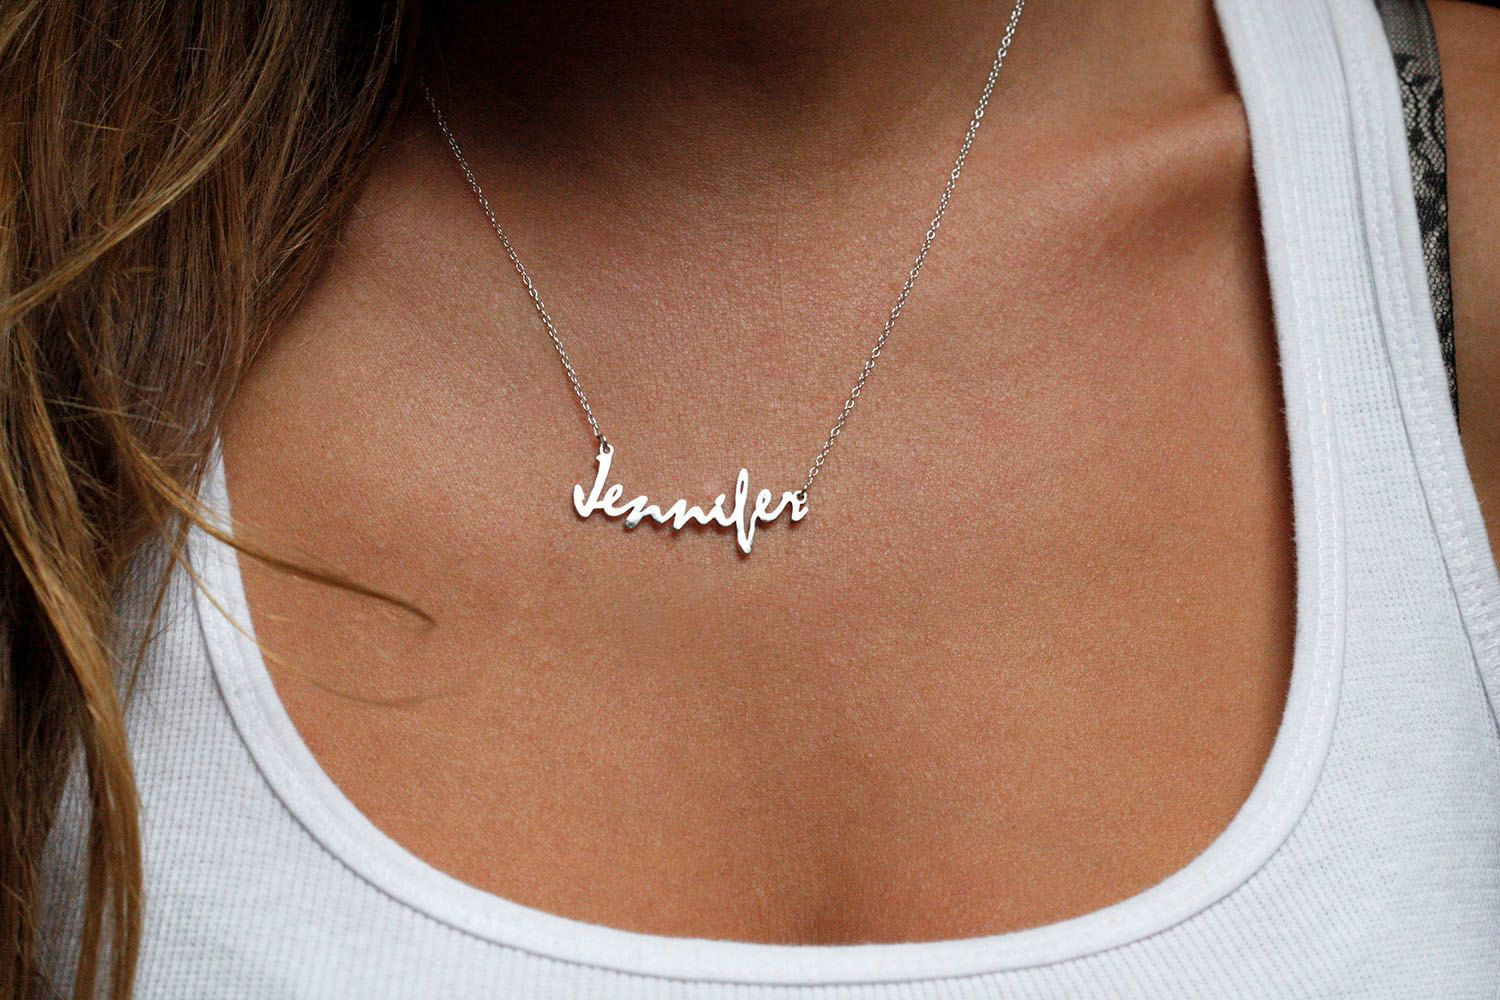 49a39ff749d64a Personalized Name Necklace Jennifer necklace Trendy by capucinne ...